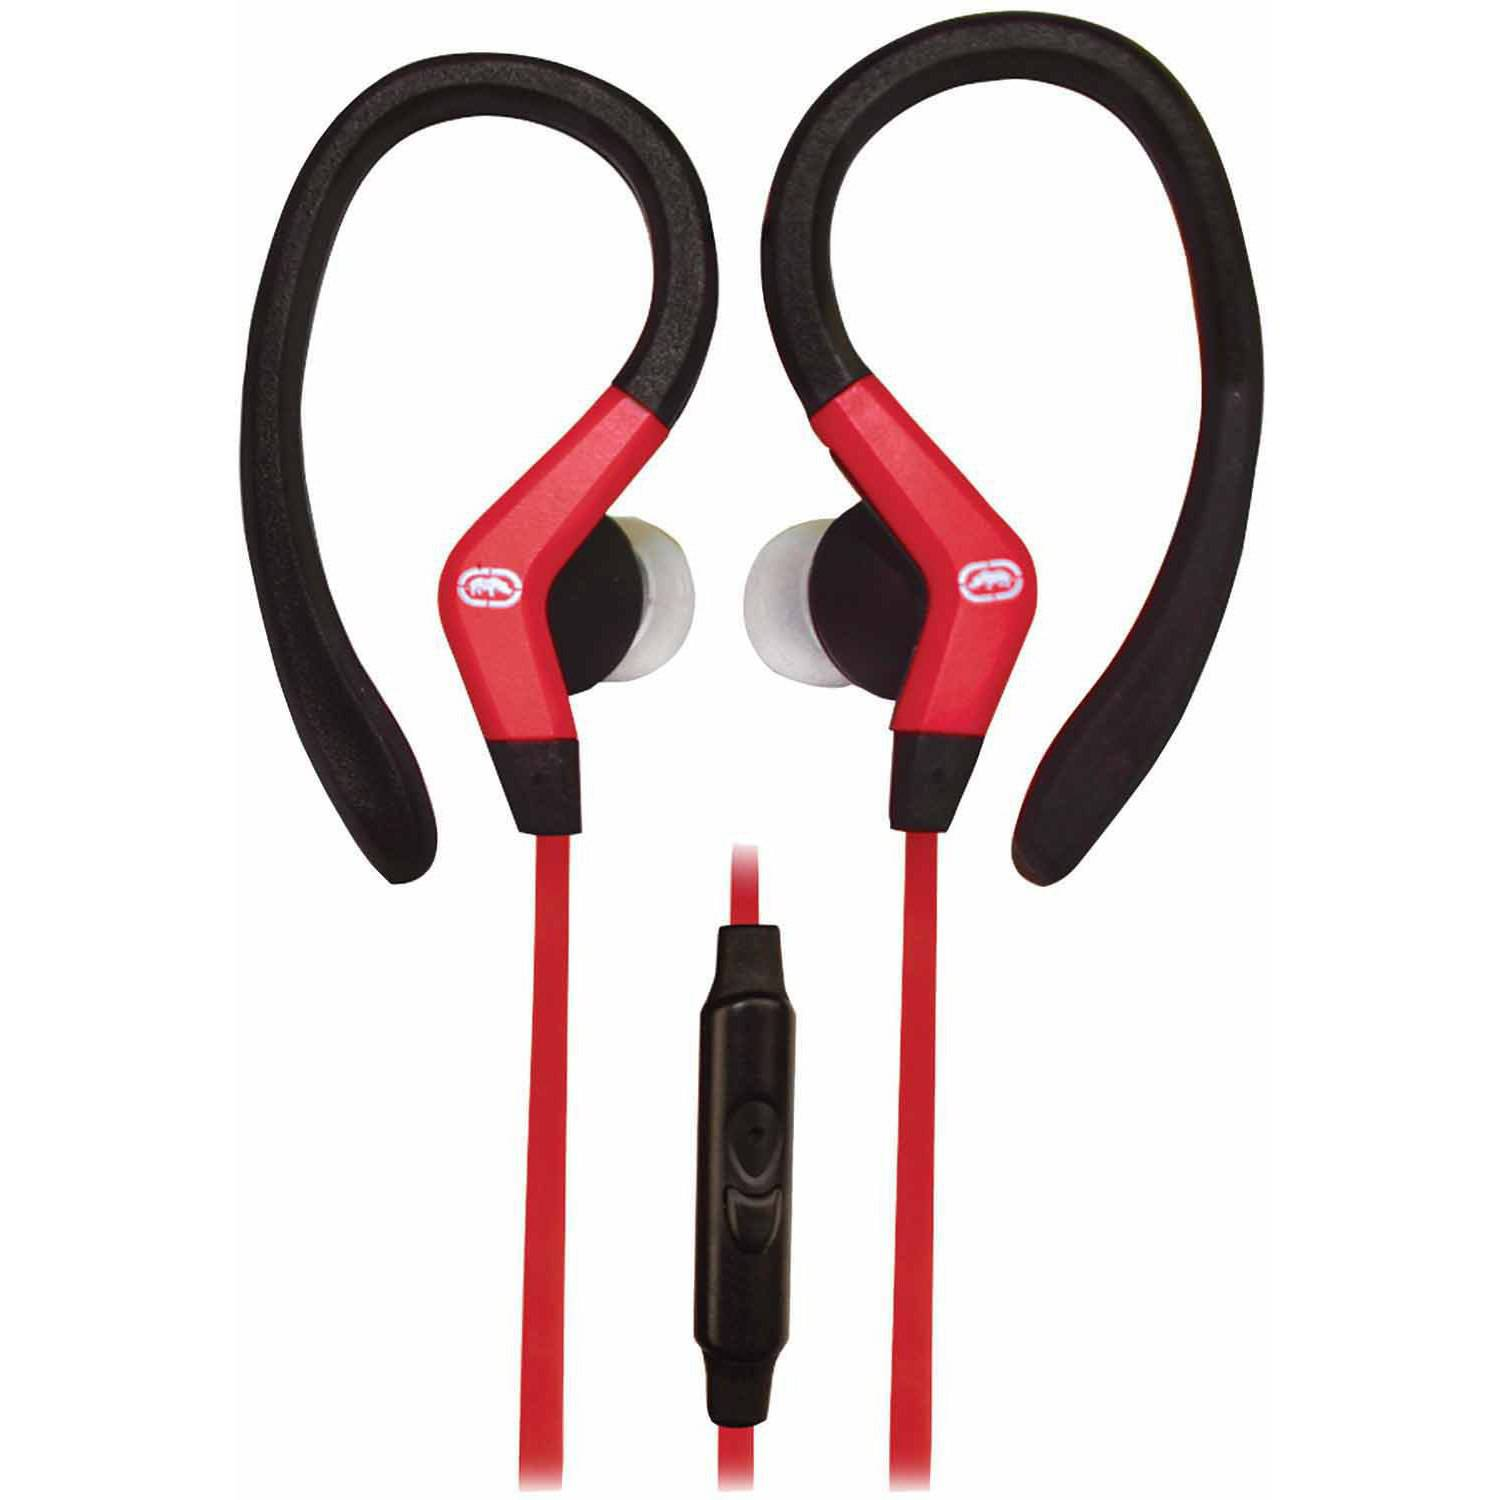 Ecko Unlimited Octane Sport Hook Earbuds with Microphone